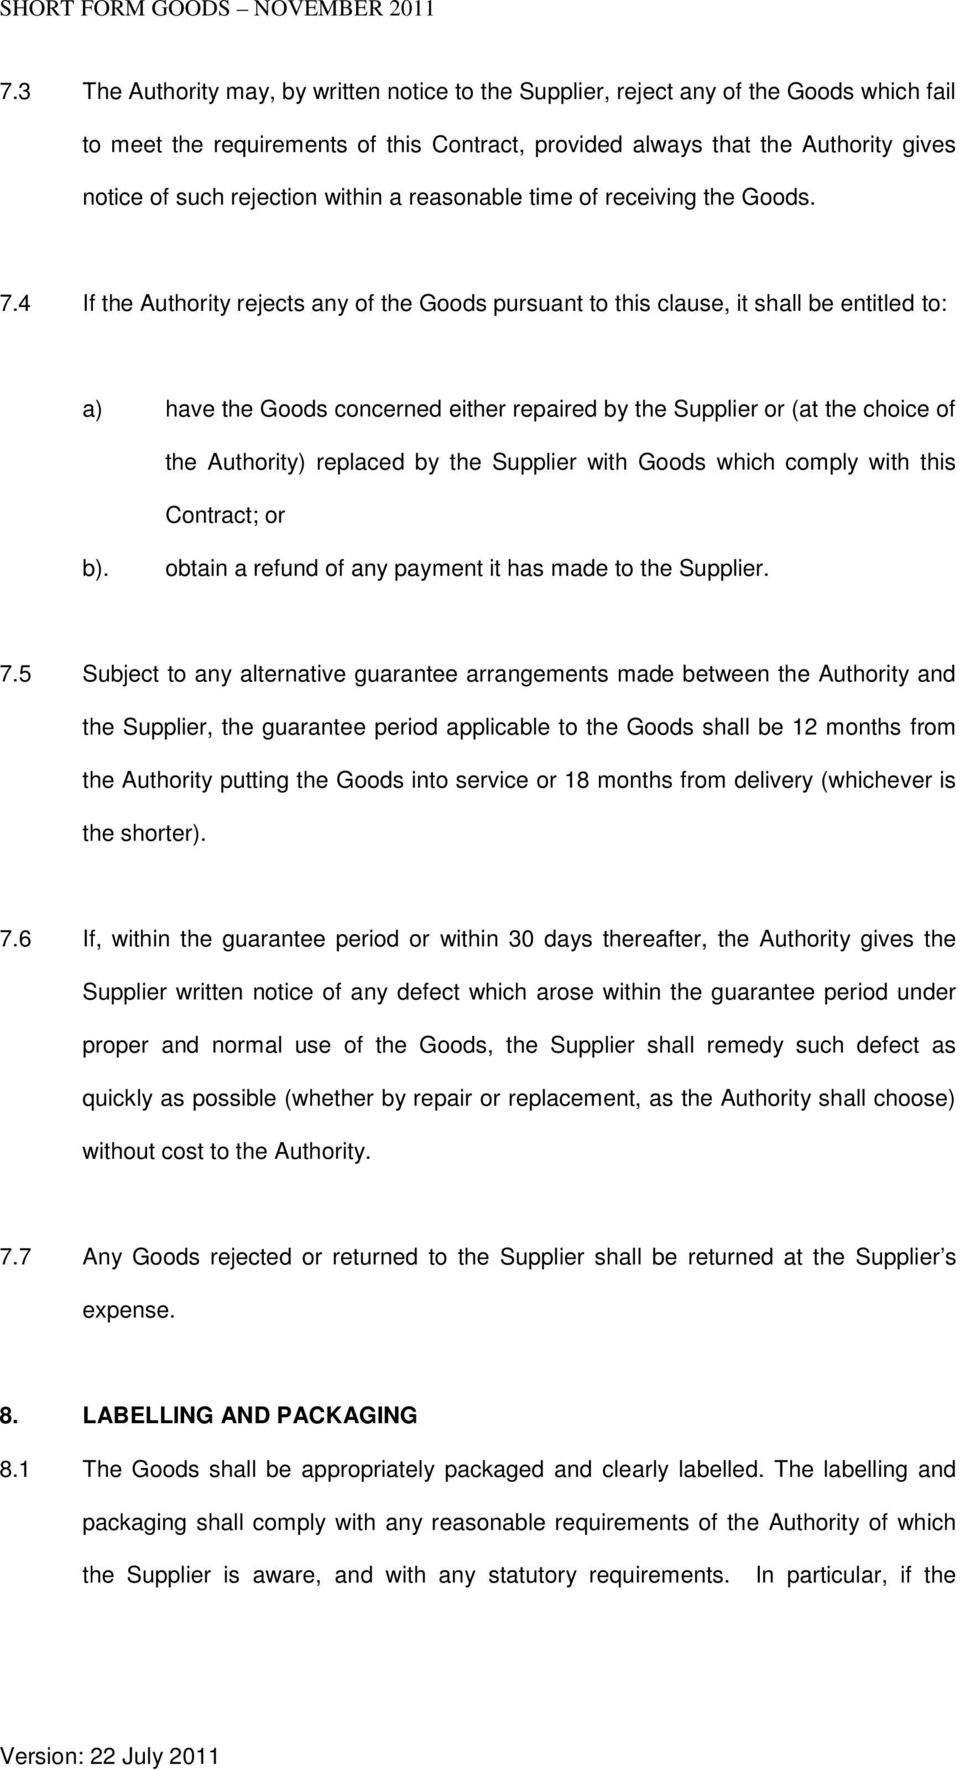 4 If the Authority rejects any of the Goods pursuant to this clause, it shall be entitled to: a) have the Goods concerned either repaired by the Supplier or (at the choice of the Authority) replaced